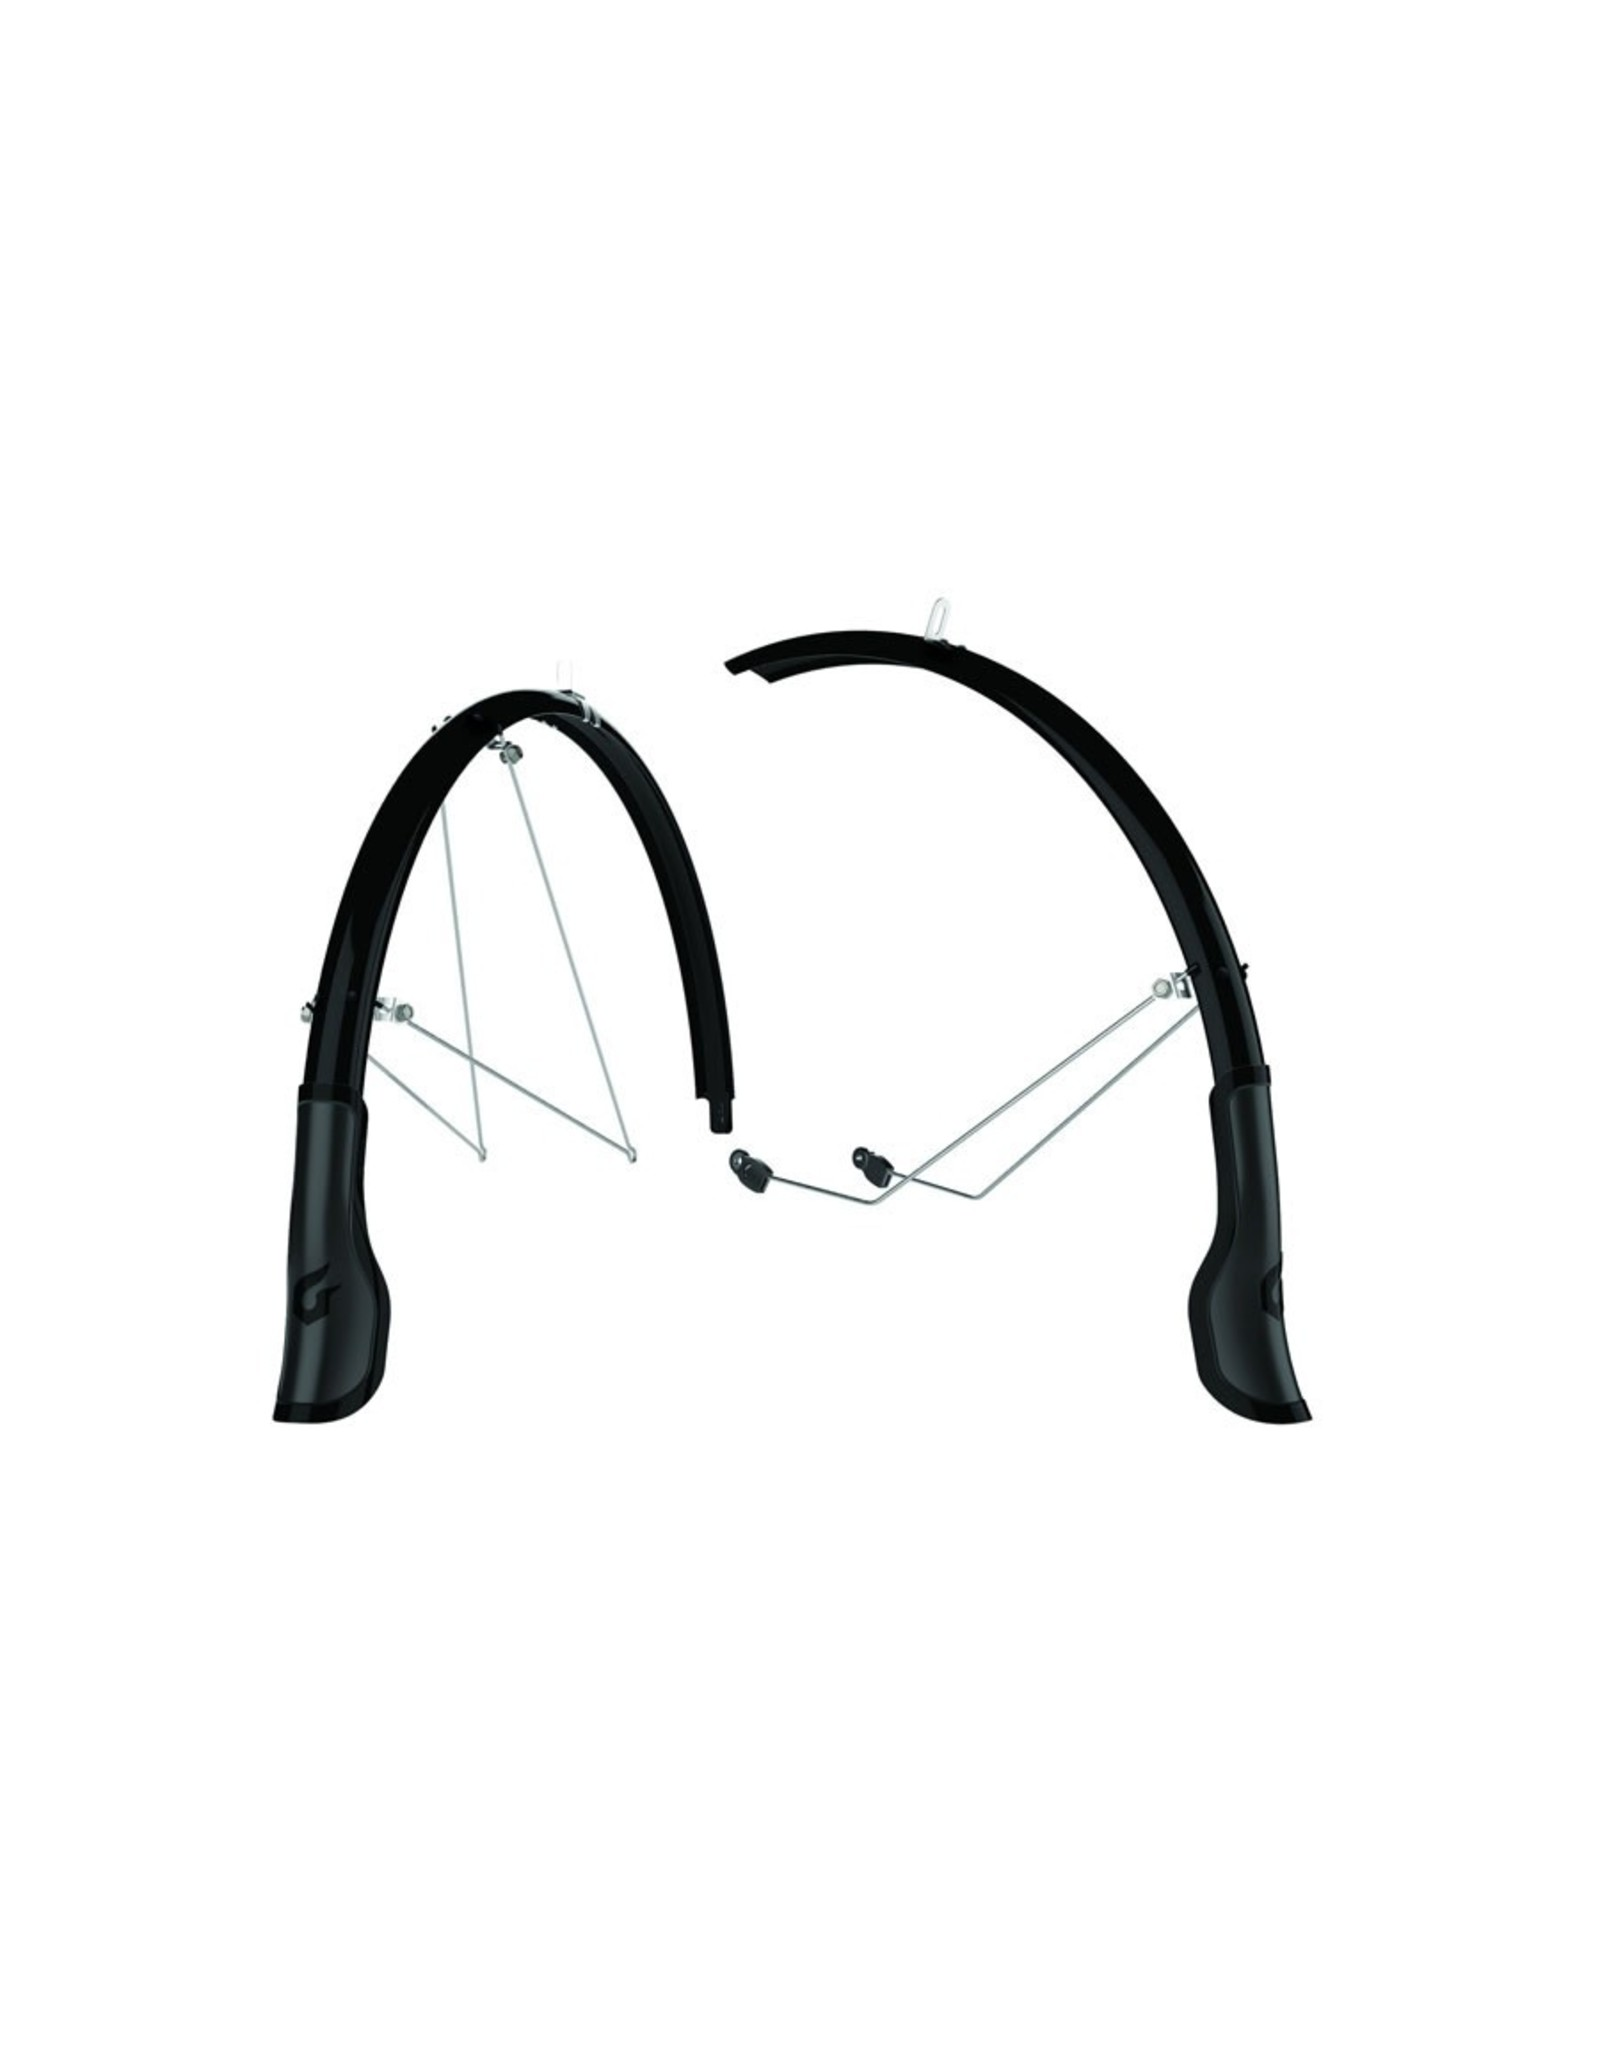 BIKE MUDGUARDS CENTRAL FULL COVERAGE 700C X 35MM